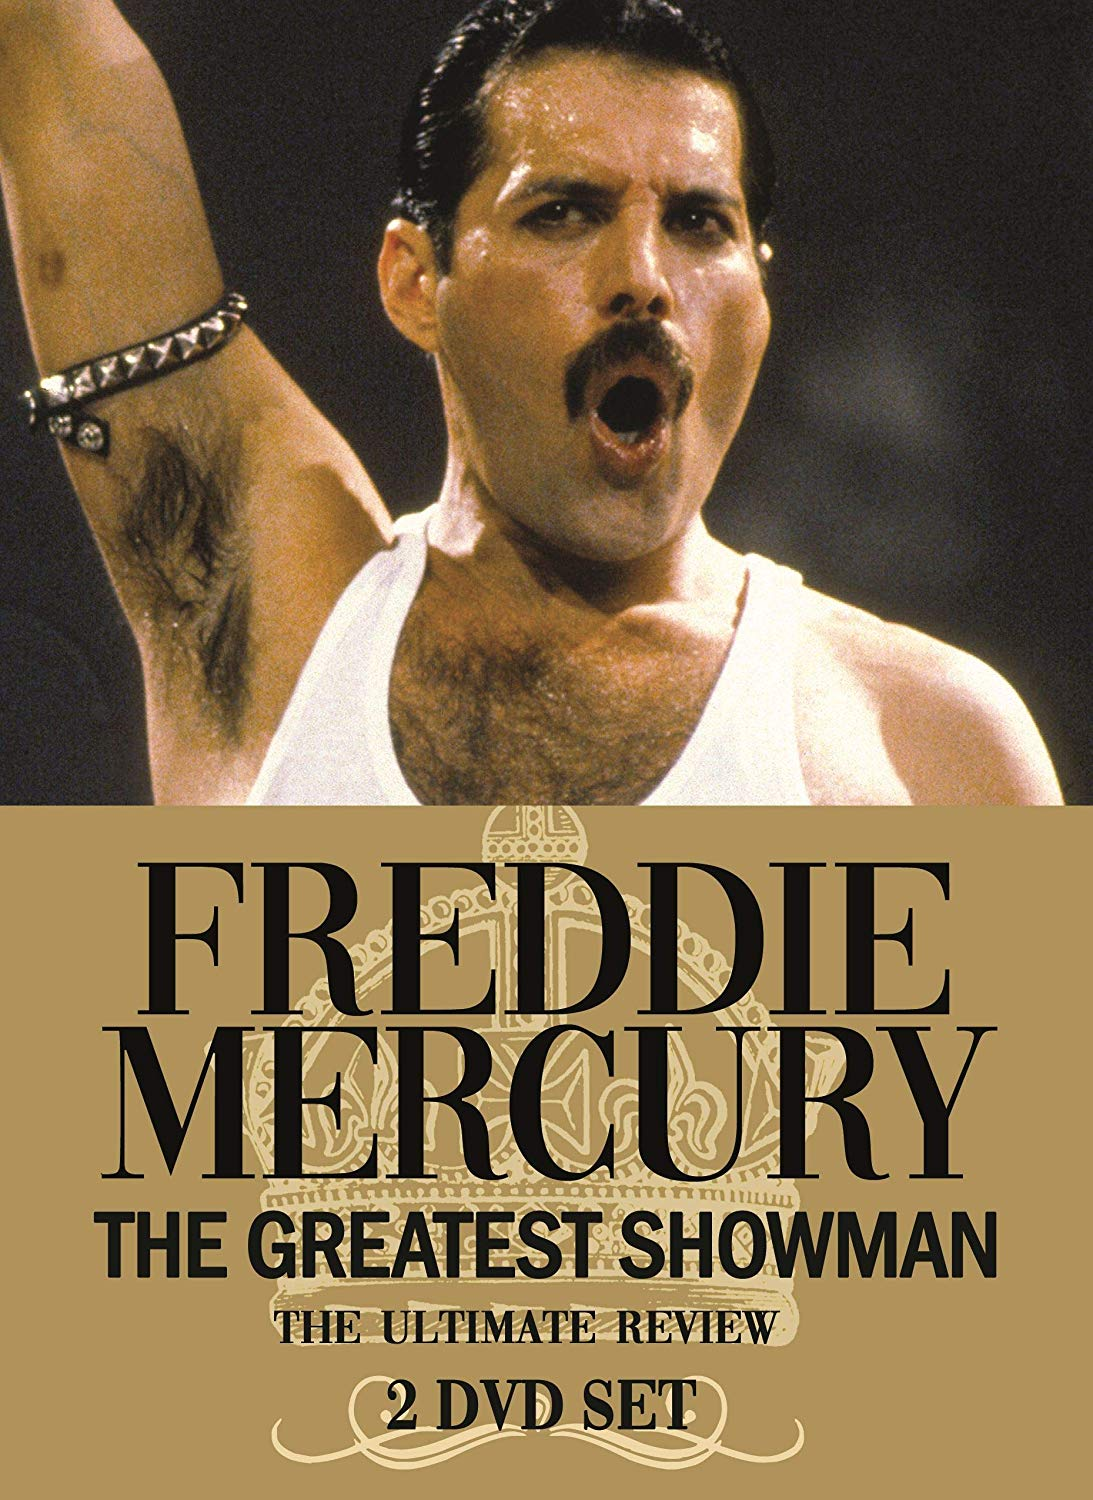 FREDDIE MERCURY - THE GREATEST SHOWMAN (2 DVD) (DVD)